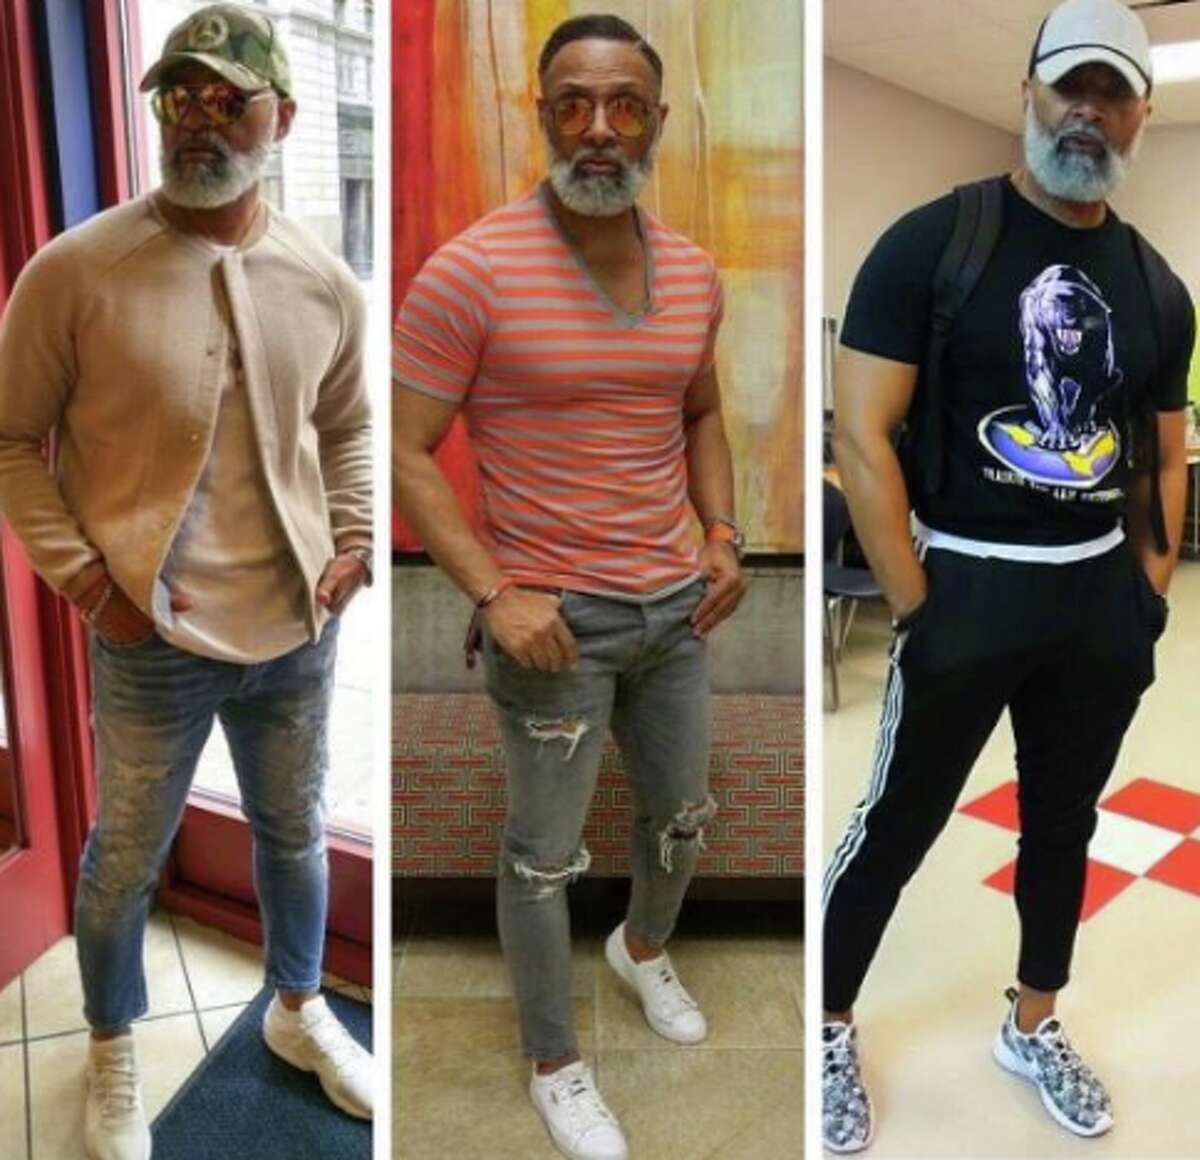 Irvin Randle, a Houston resident, has gone viral with his selfies. The website, Bossip, has dubbed him #MrStealYourGrandma